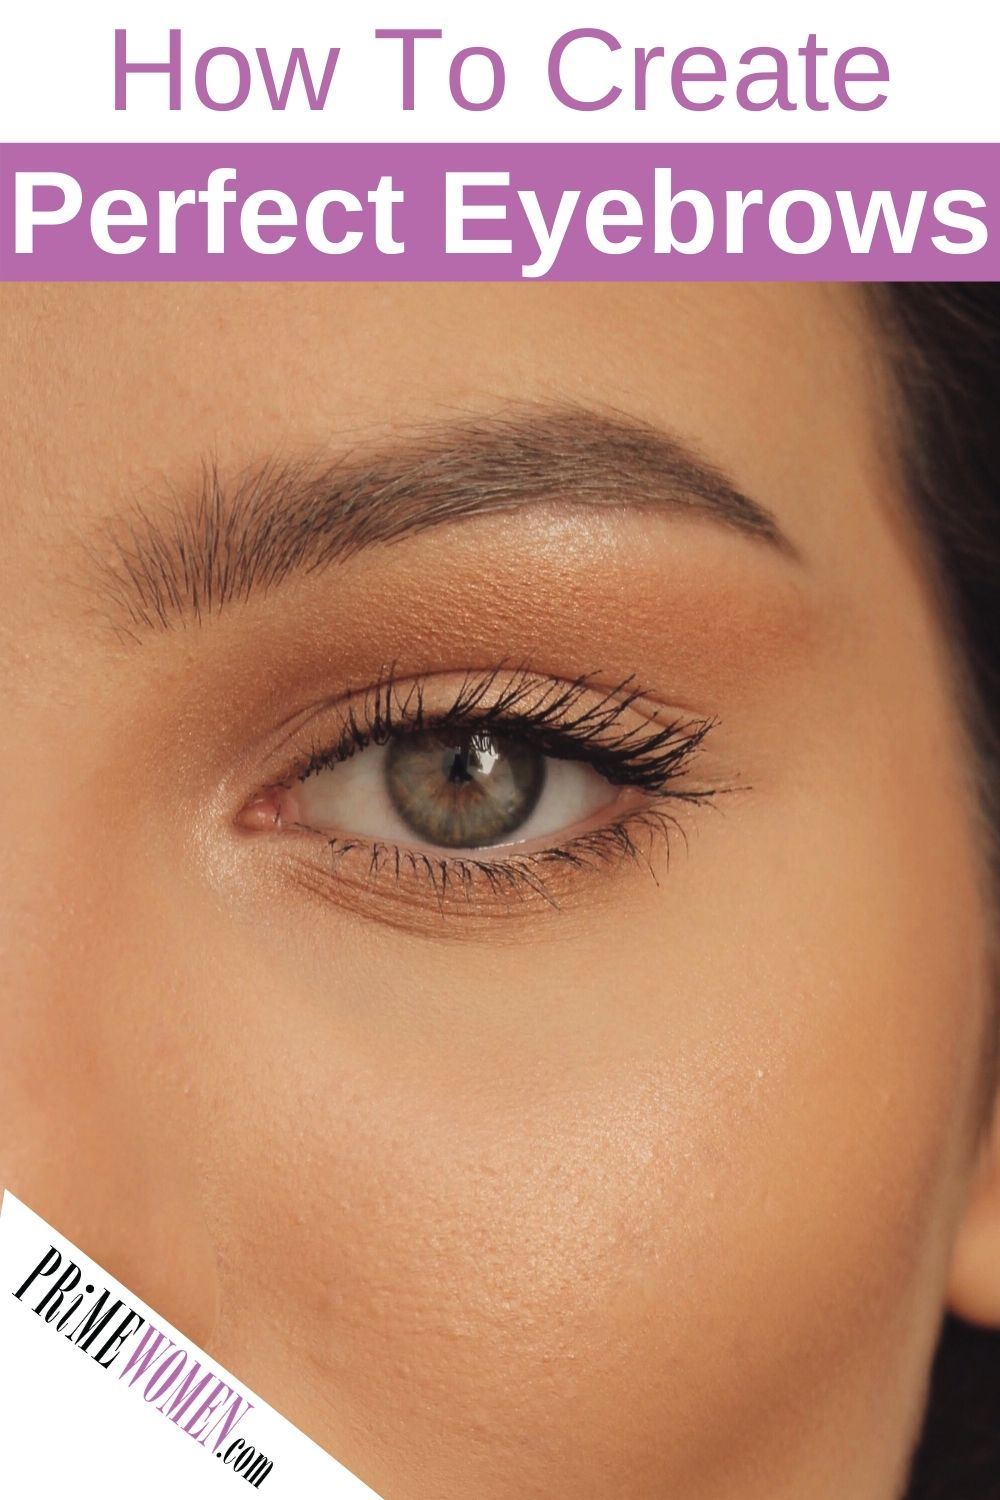 How to create perfect eyebrows